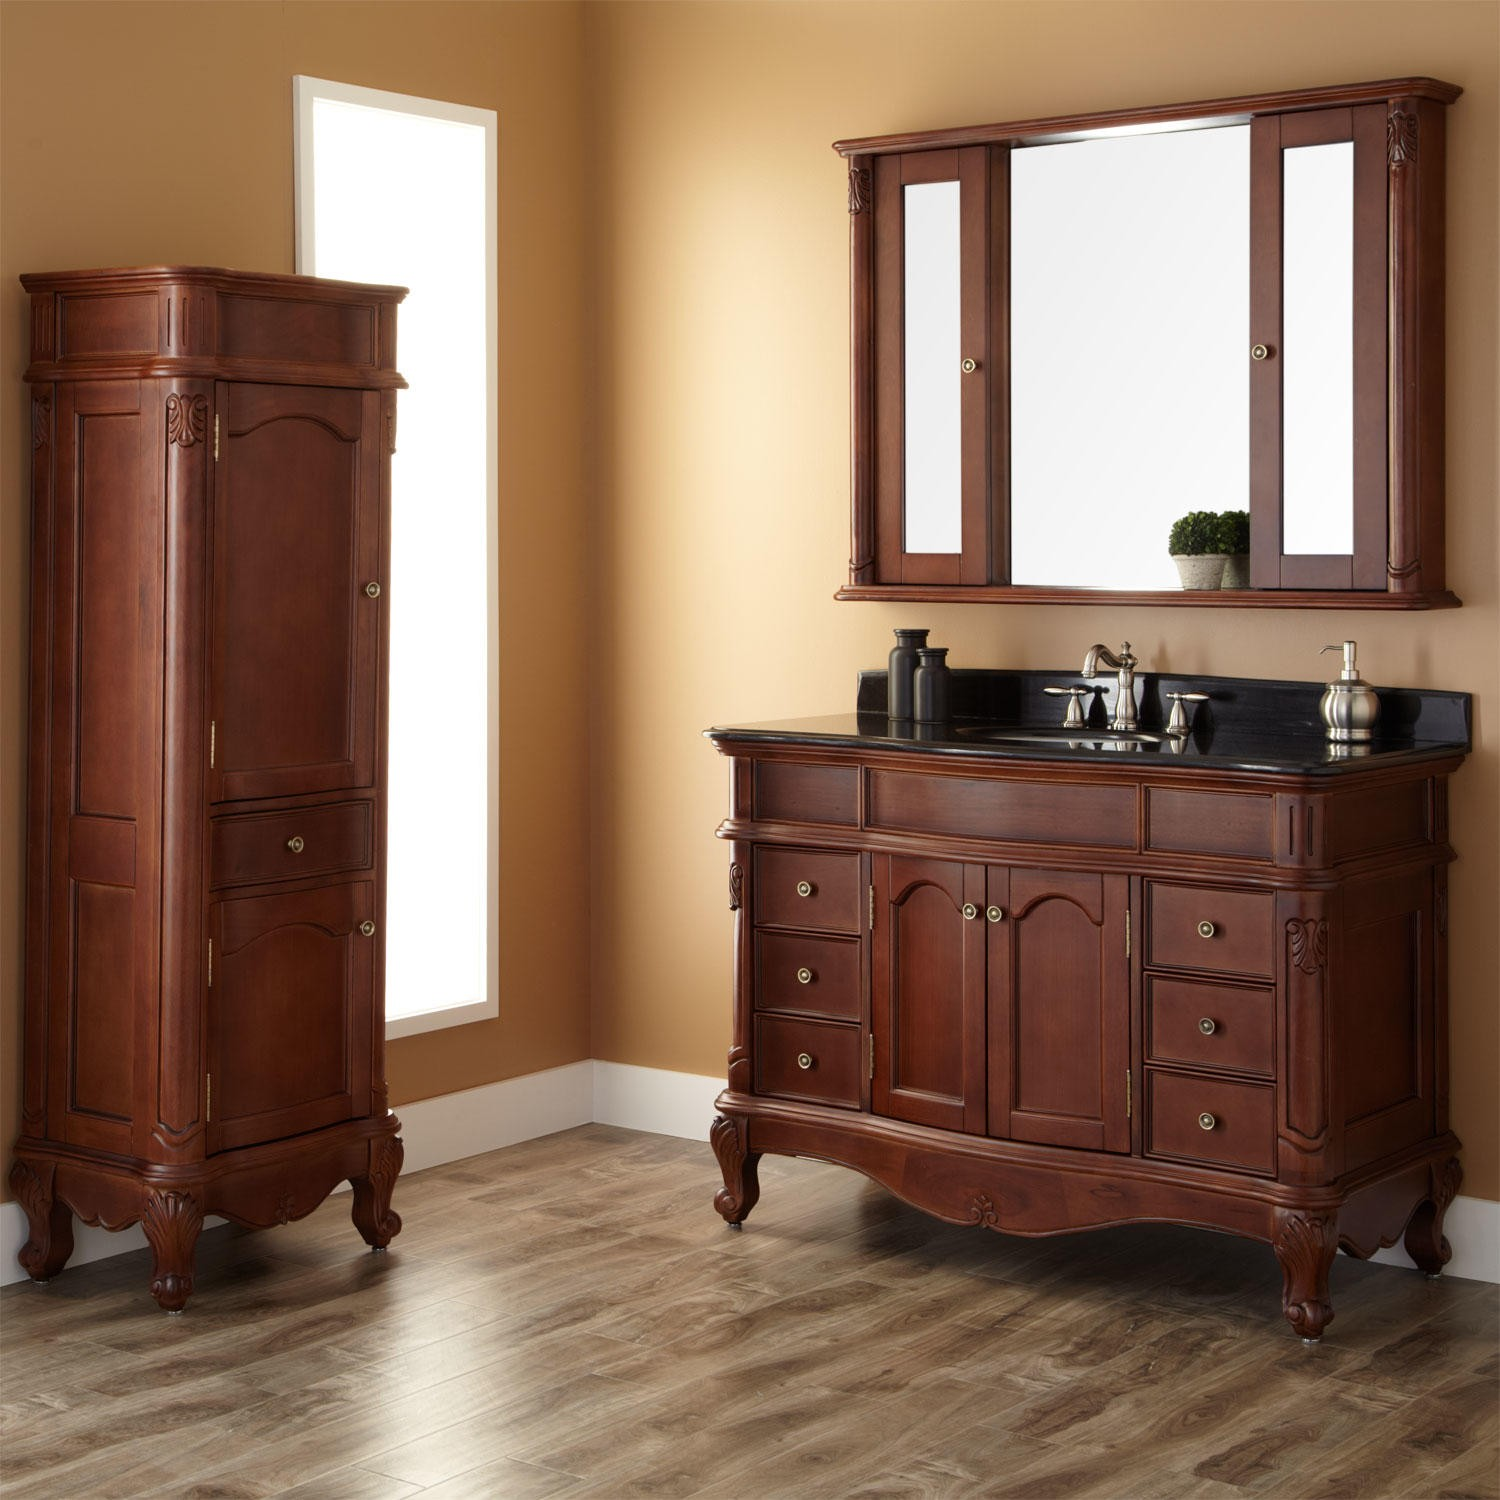 Bathroom Vanities With Matching Medicine Cabinets 17 Bathroom Vanity And  Linen Cabinet Sets, Ideas For